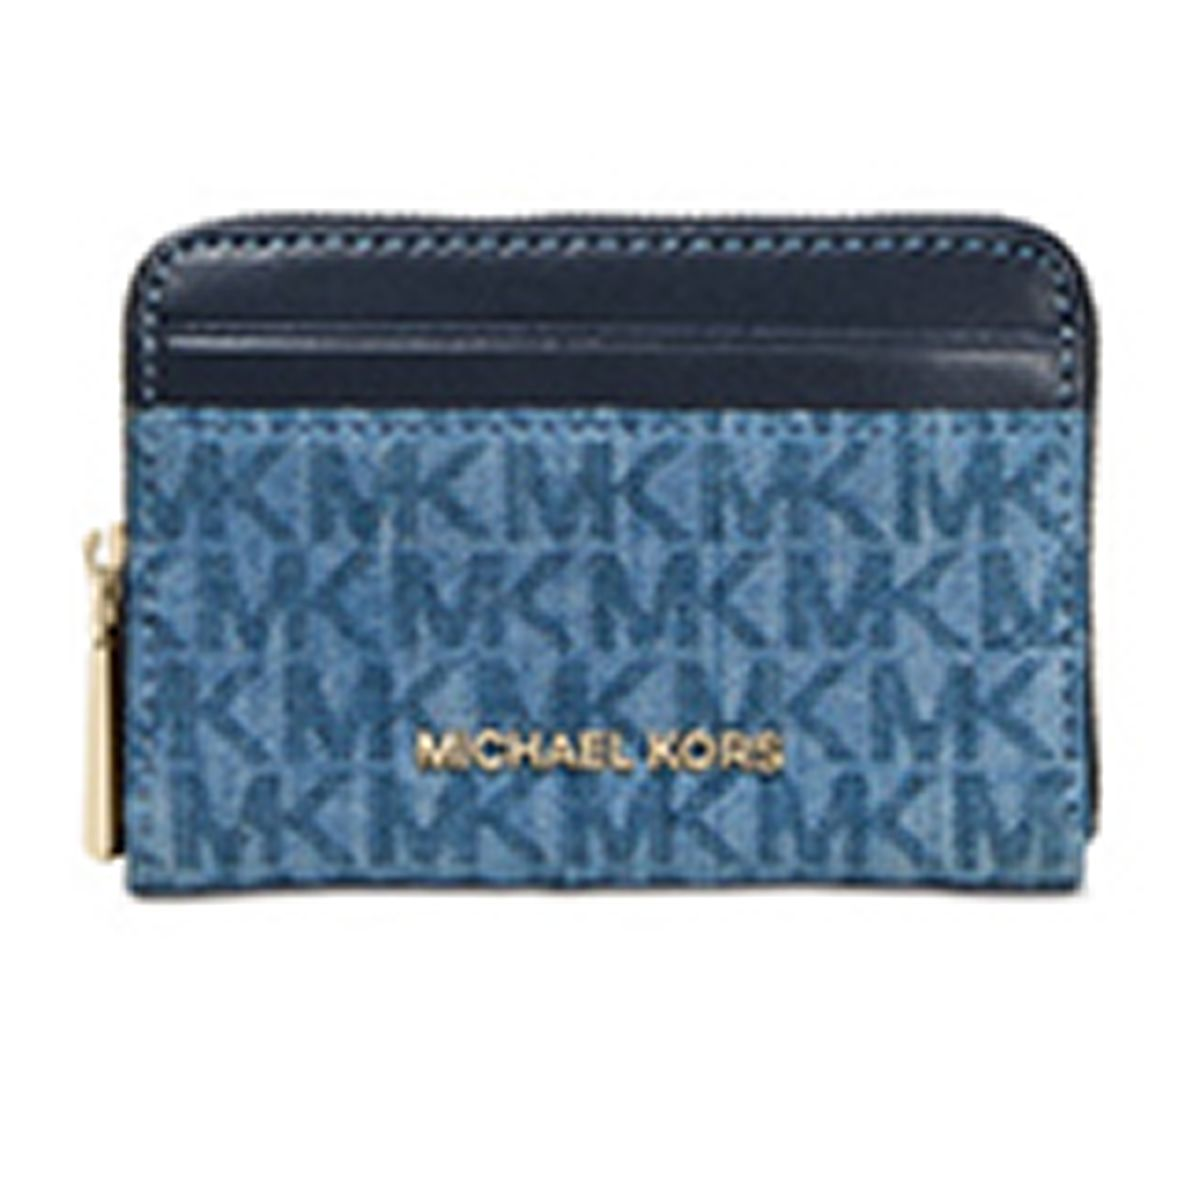 8b1179456c96 Michael Kors Designer Wallets for Women - Macy's